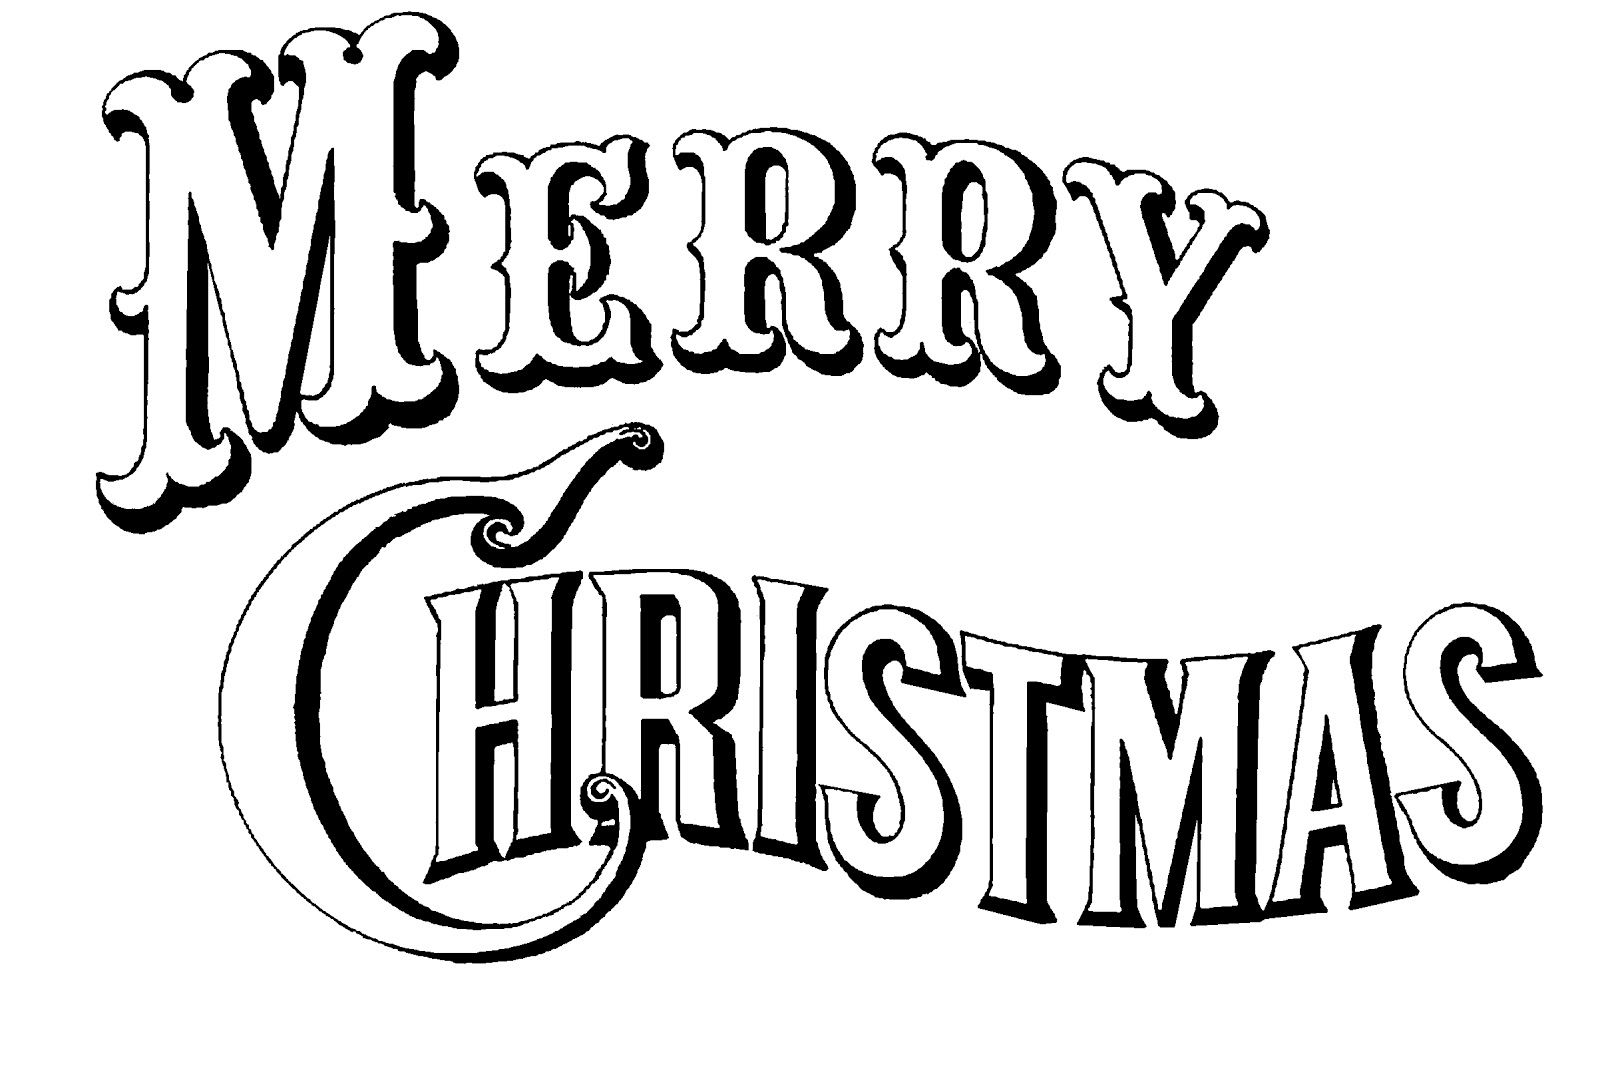 Merry Christmas Sign Coloring Pages With Black White Image Created From A Currier Ives